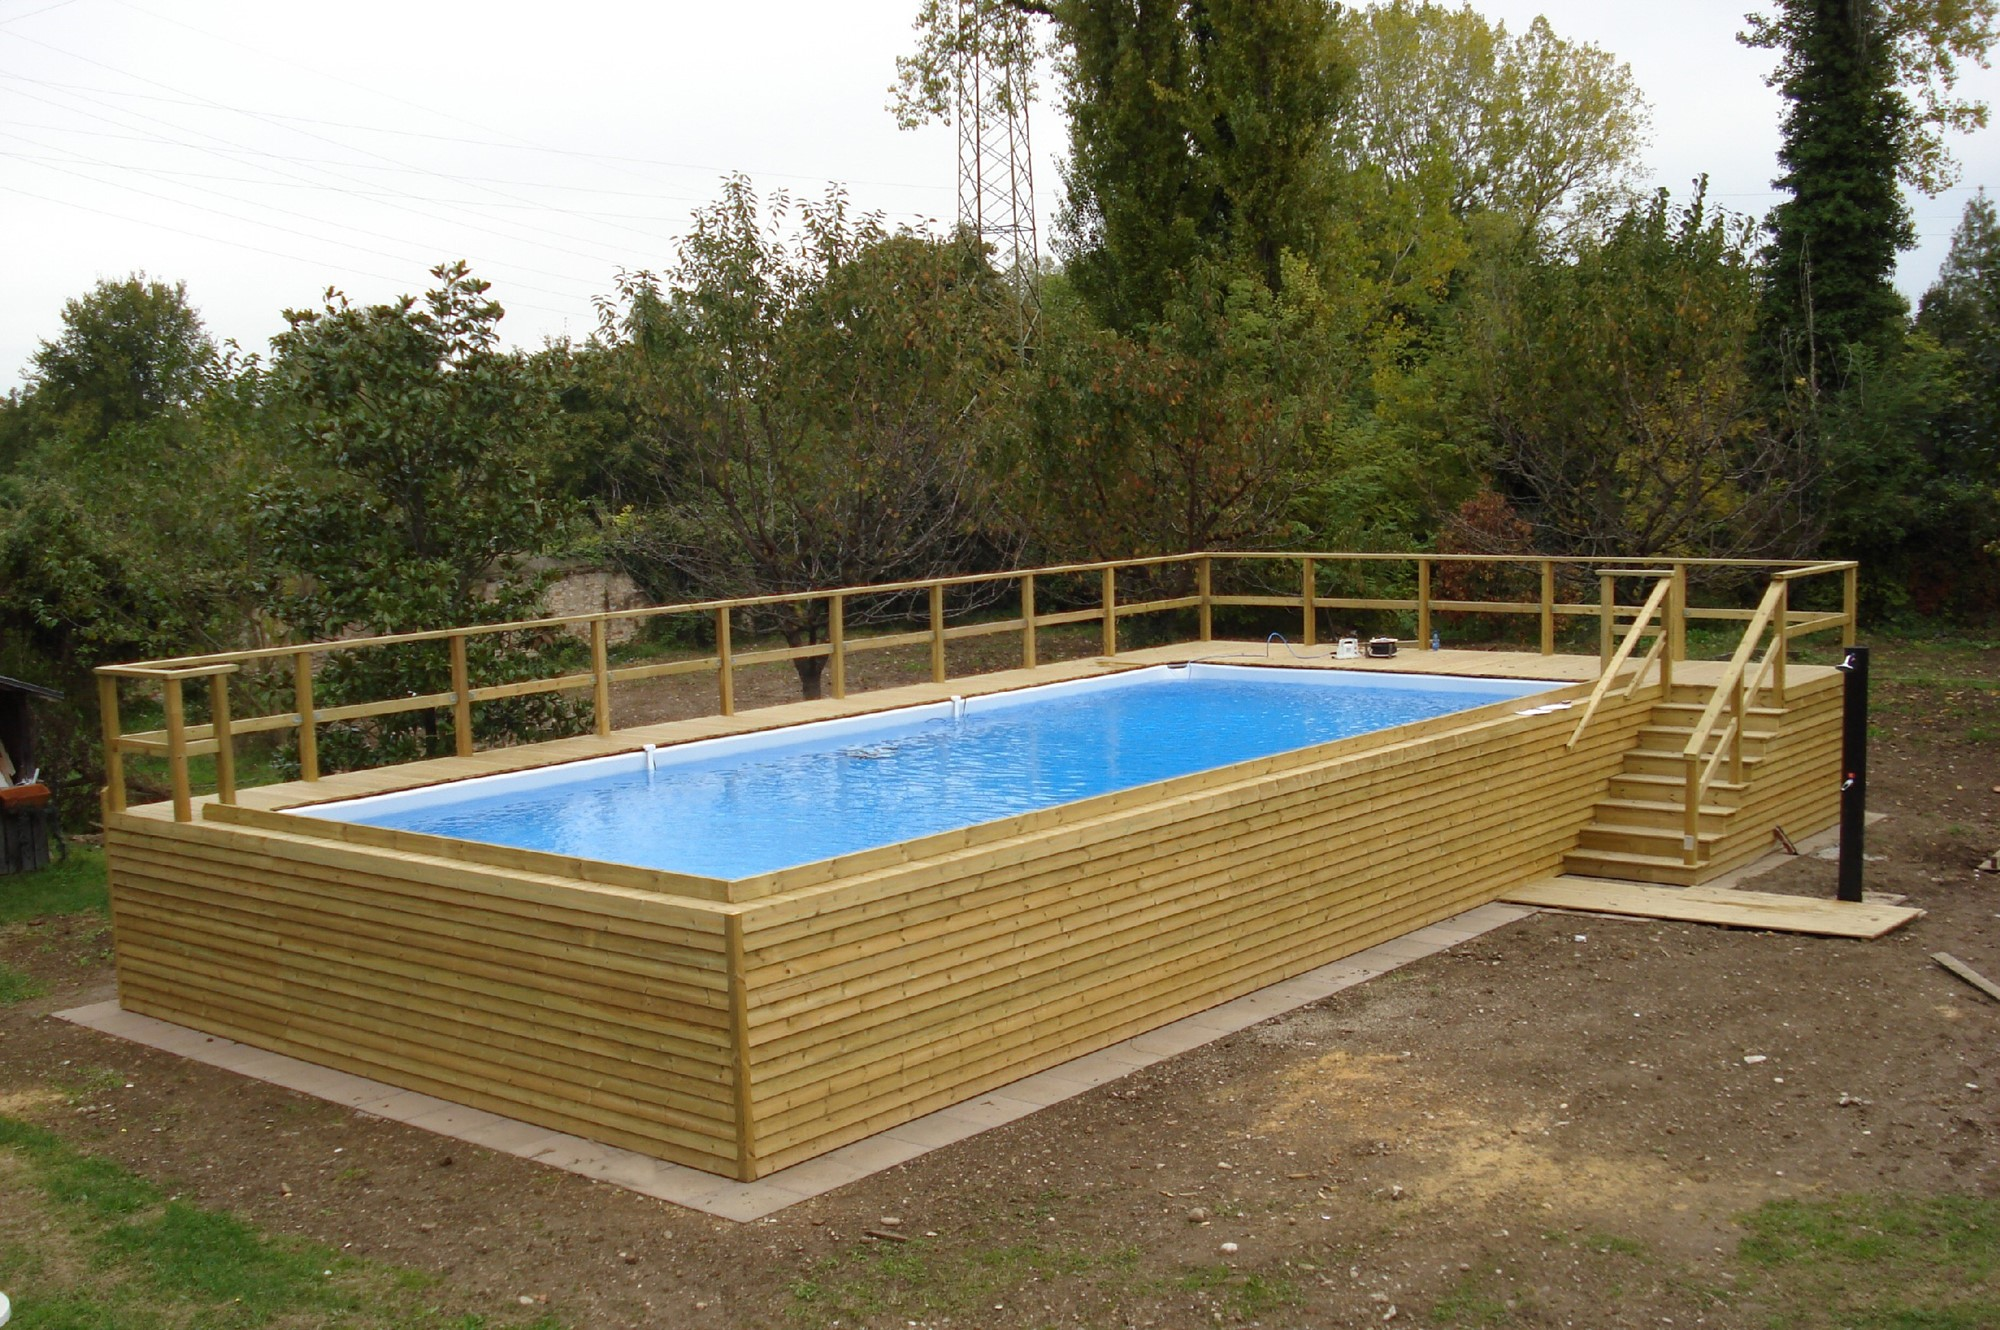 Piscine for Piscina 6 metri per 3